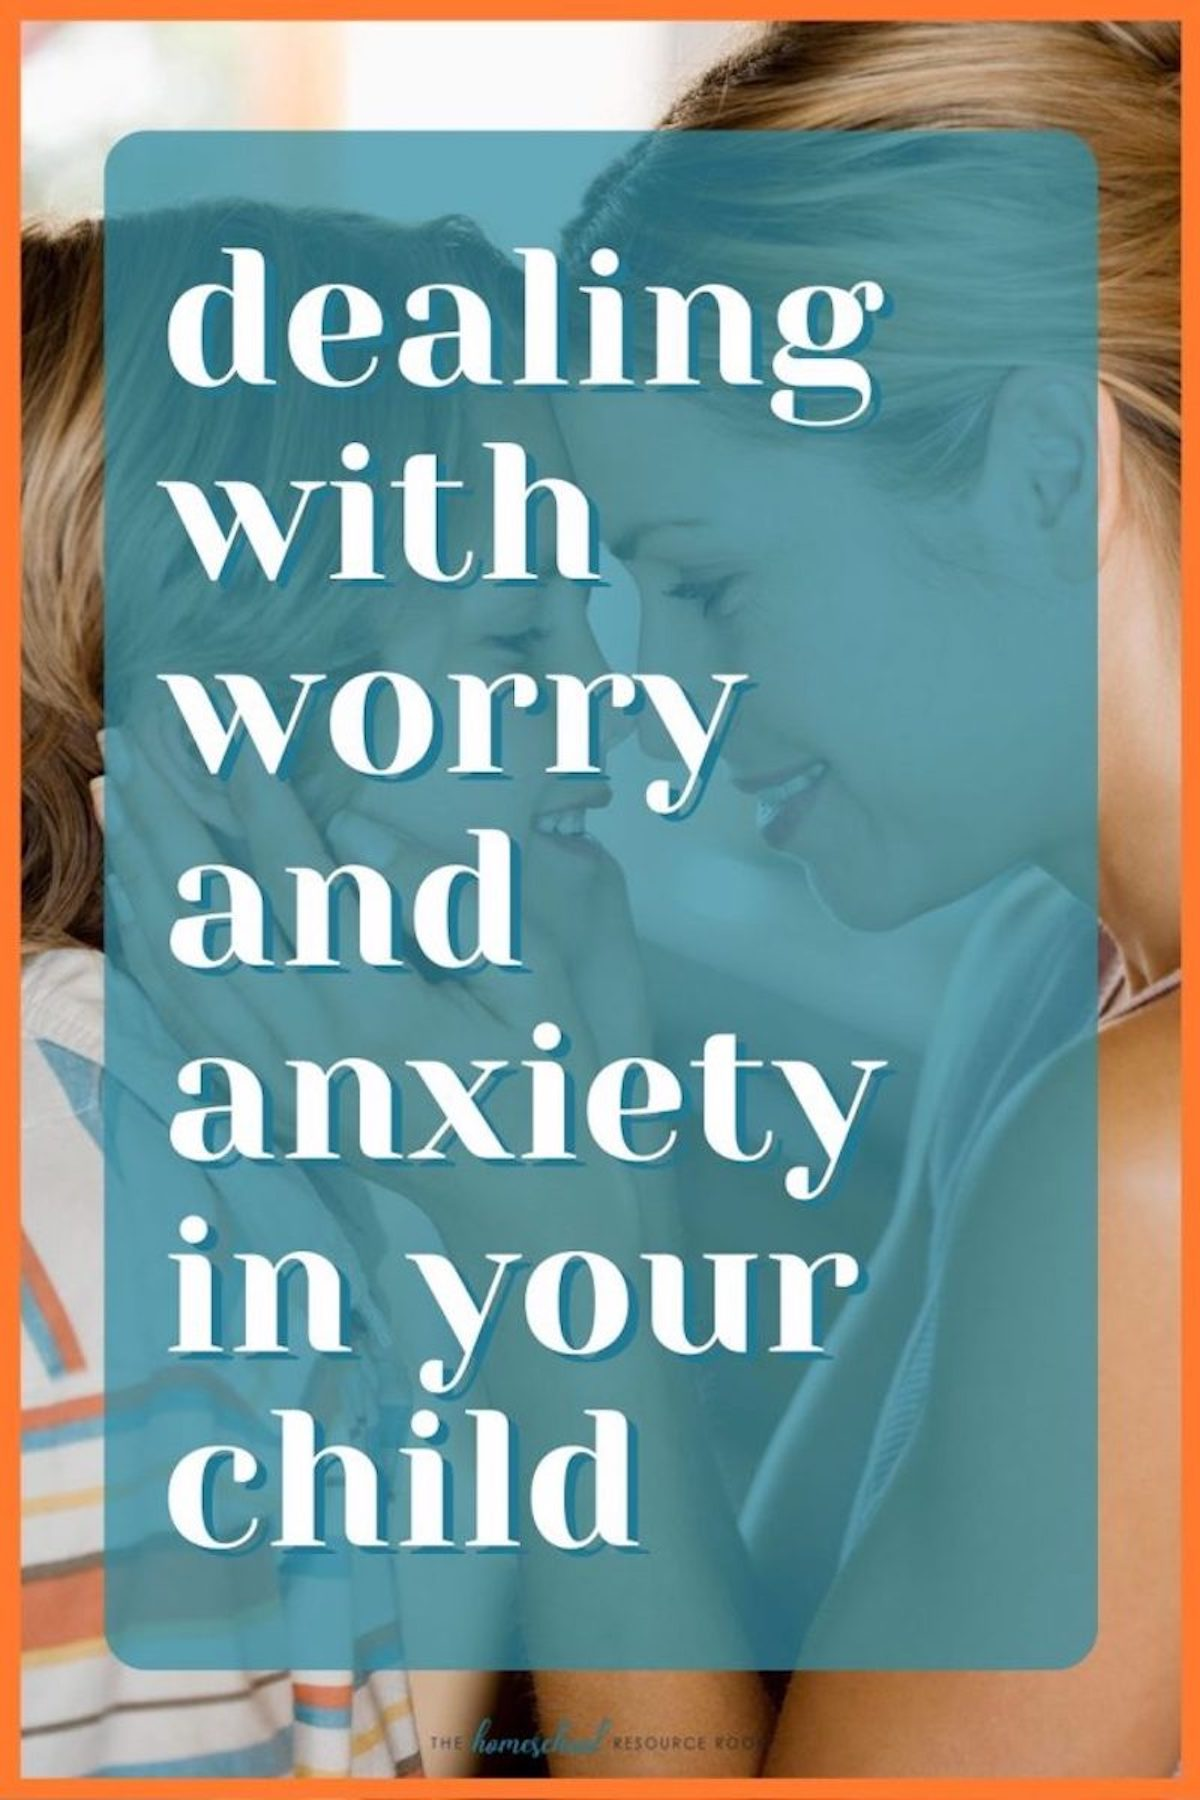 It can be hard as a parent to help know what activities your children with anxiety could benefit from, and what might make it worse. It's so hard to see them suffer, and that can lead to you feeling powerless. 6 Tips for helping your child deal with anxiety.